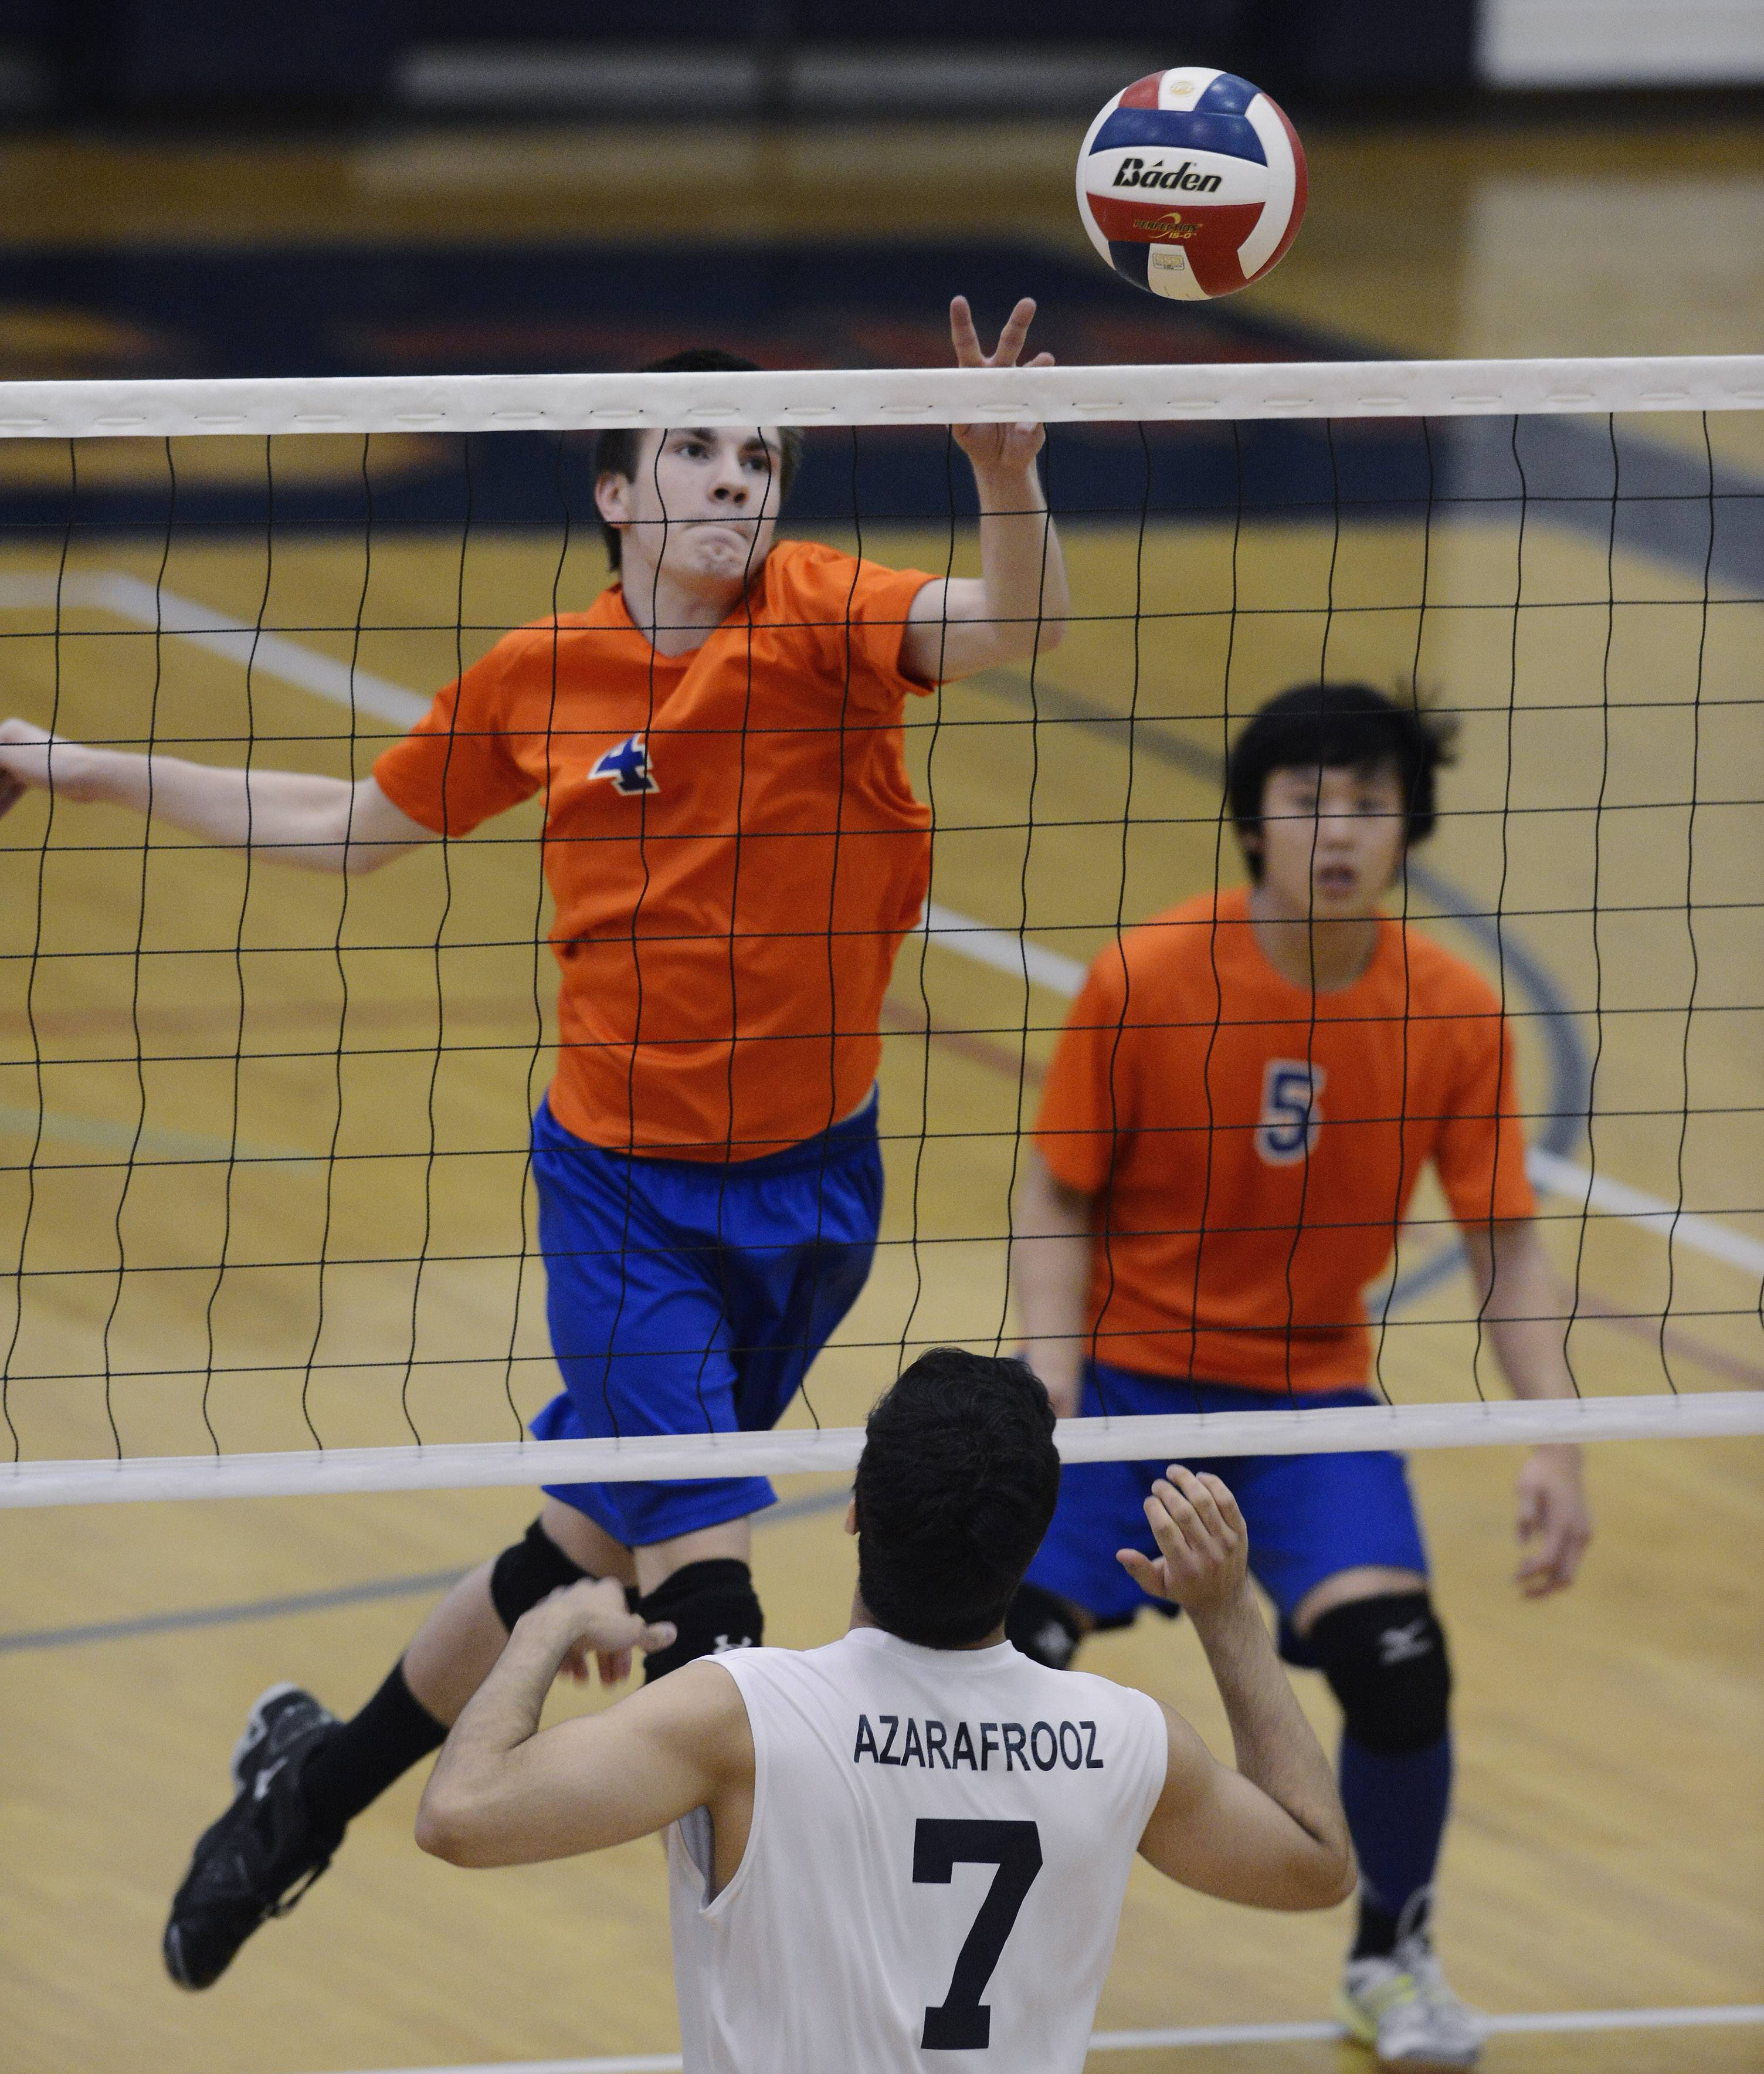 Hoffman Estates' Matt Stacy, left, taps the ball past Conant's Nickan Azarafrooz during Tuesday's match.